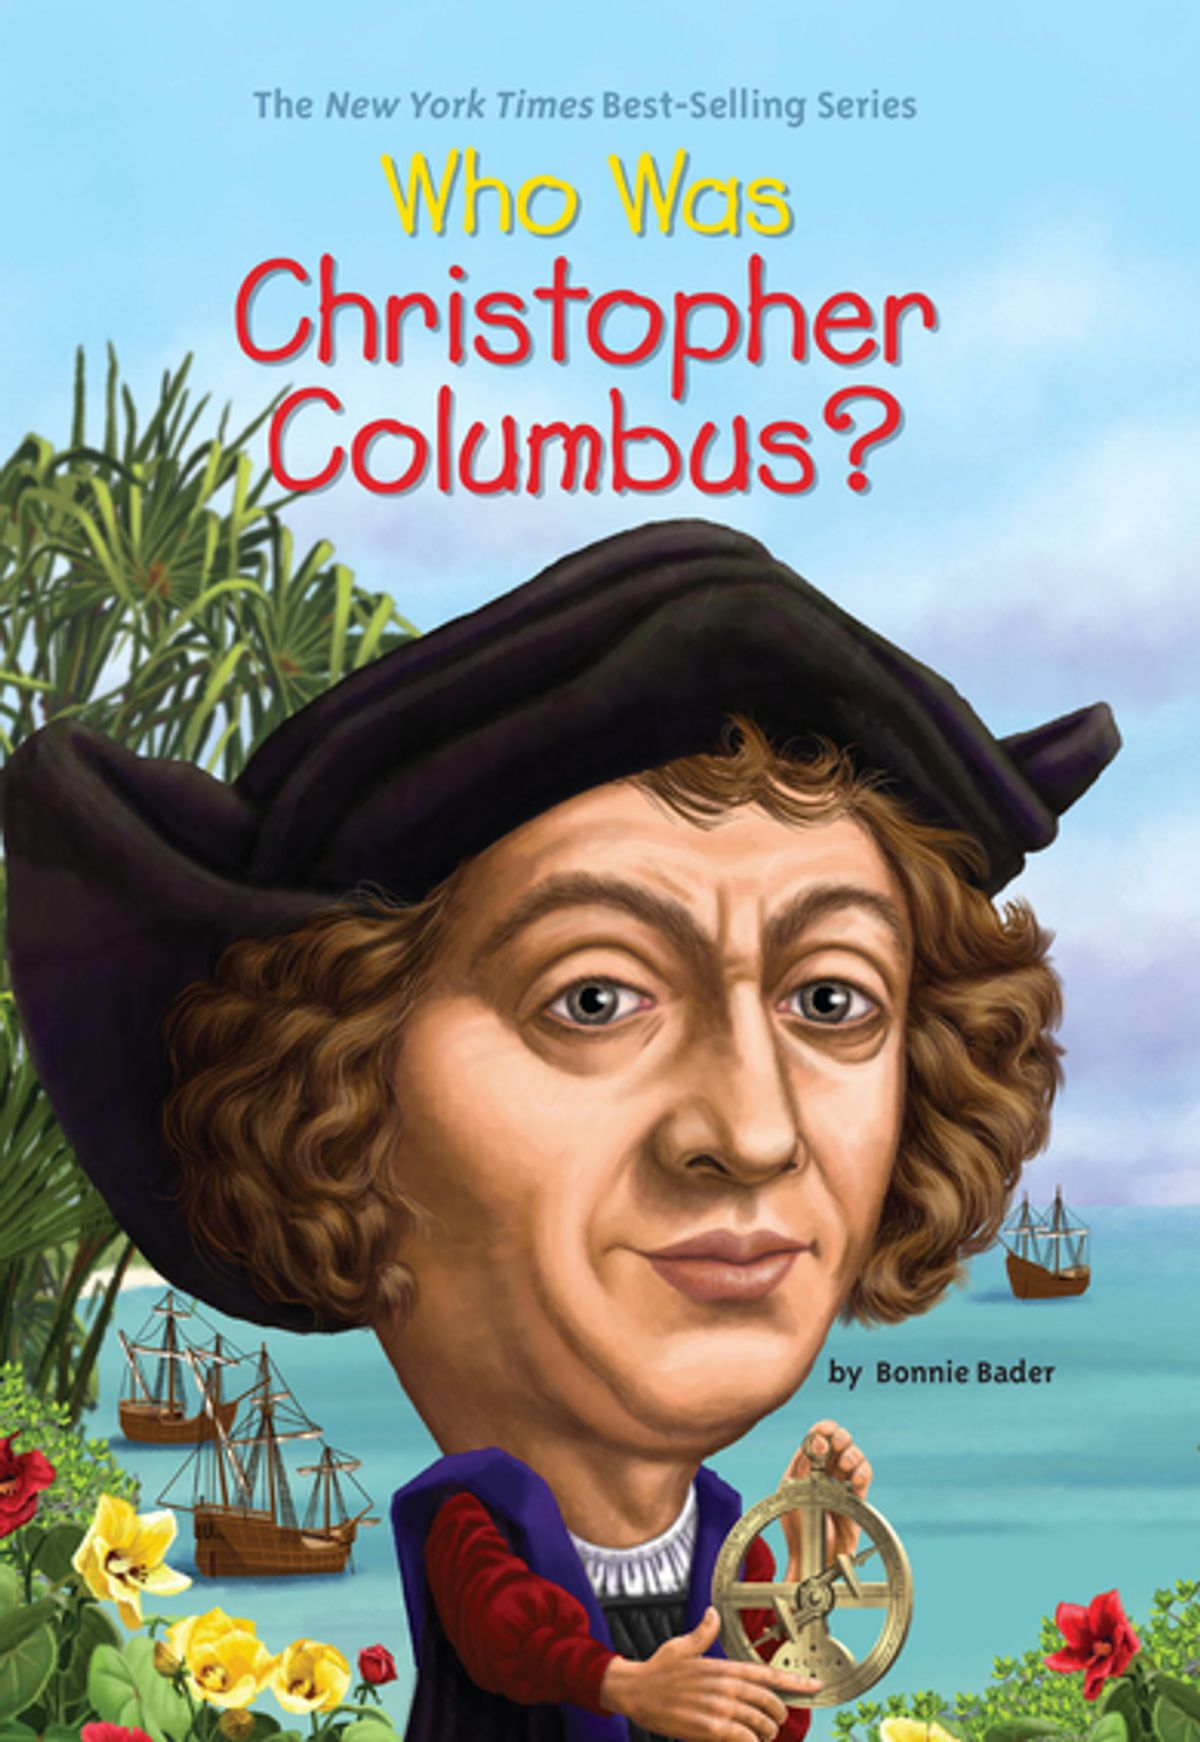 essay on christopher columbus the villain Christopher columbus: hero or villain this essay christopher columbus: hero or villain and other 63,000+ term papers, college essay examples and free essays are available now on reviewessayscom.